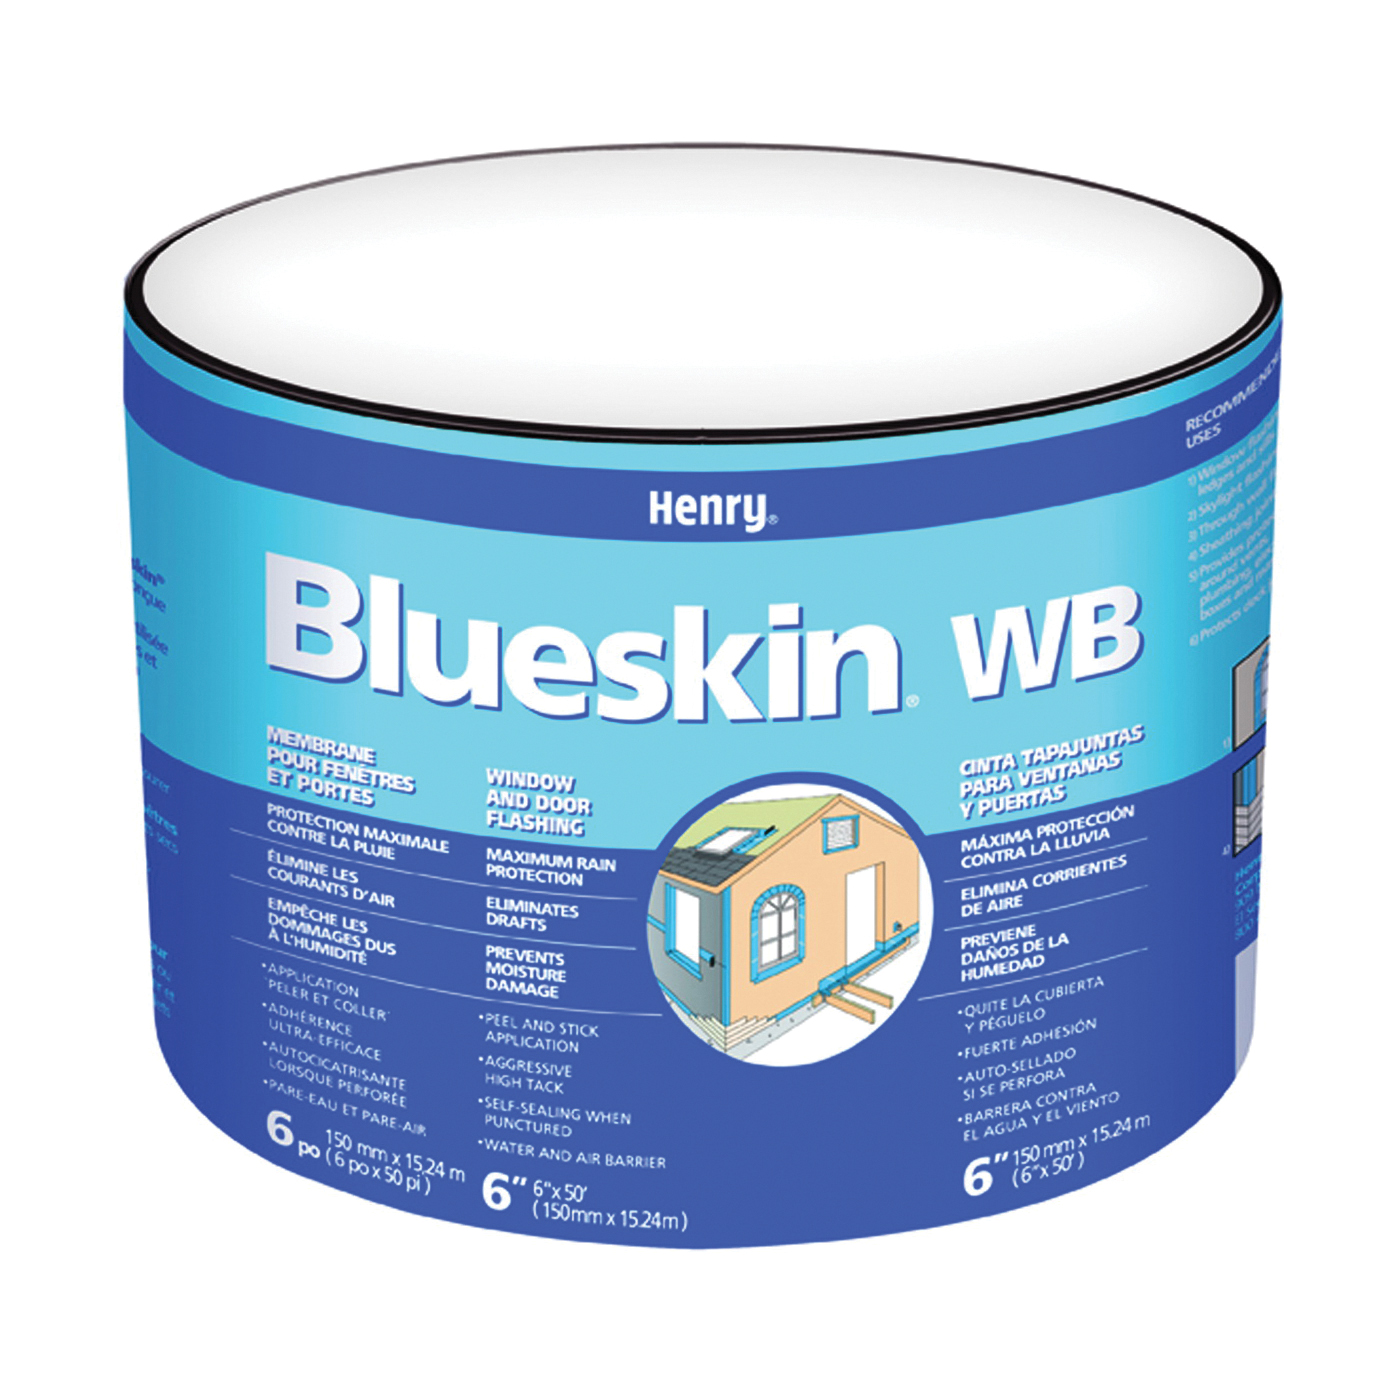 Picture of Henry Blueskin WB BH200WB4559 Window and Door Flashing, 50 ft L, 4 in W, Blue, Self Adhesive